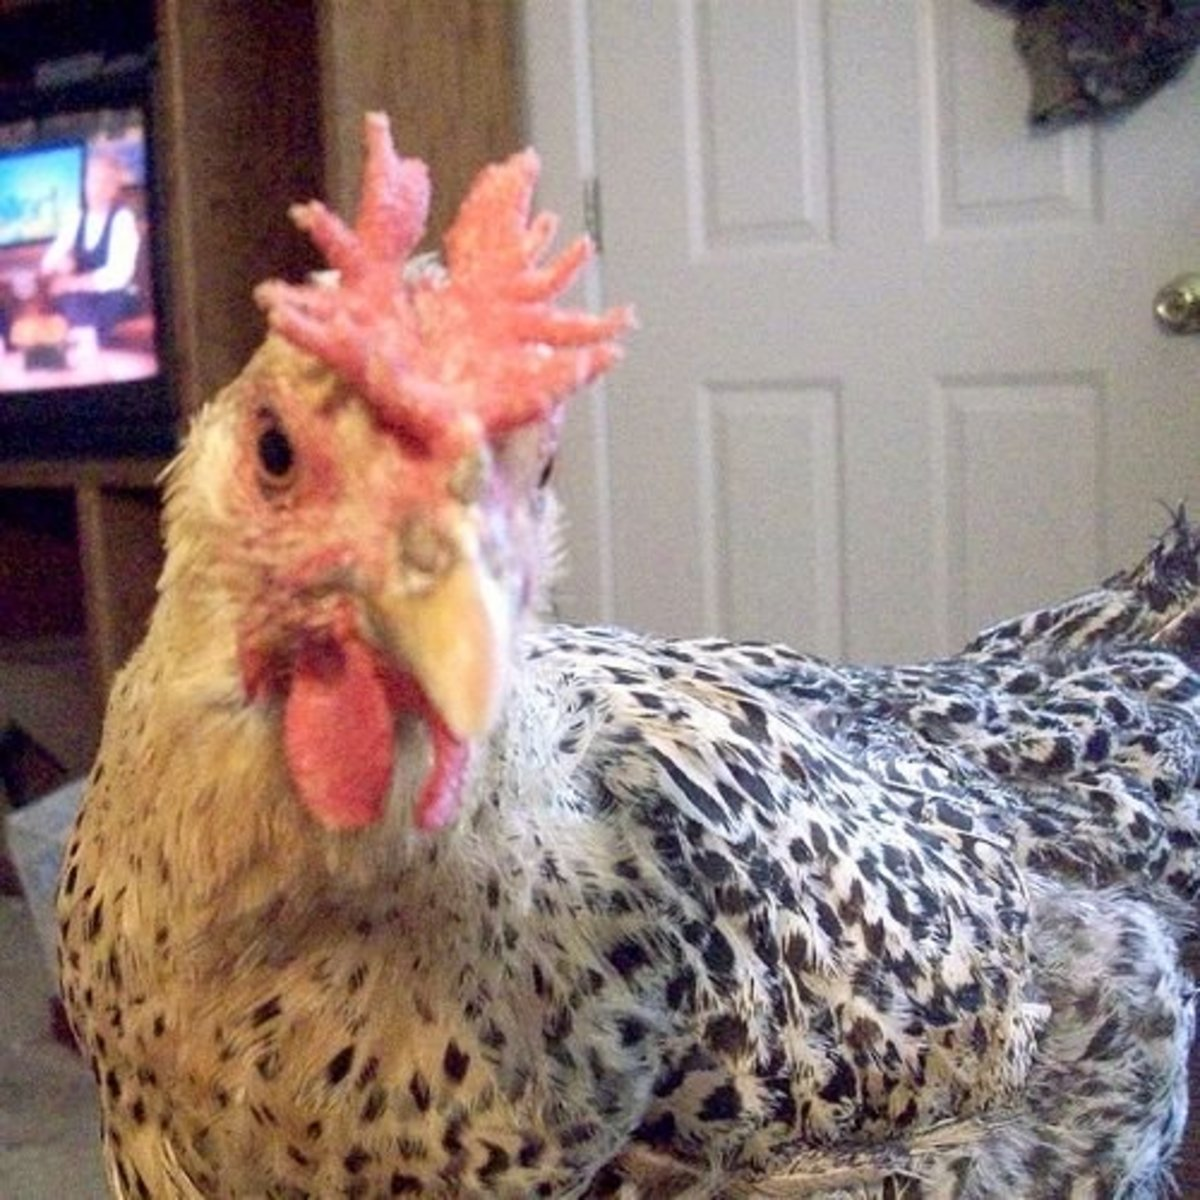 Chickens can be intelligent